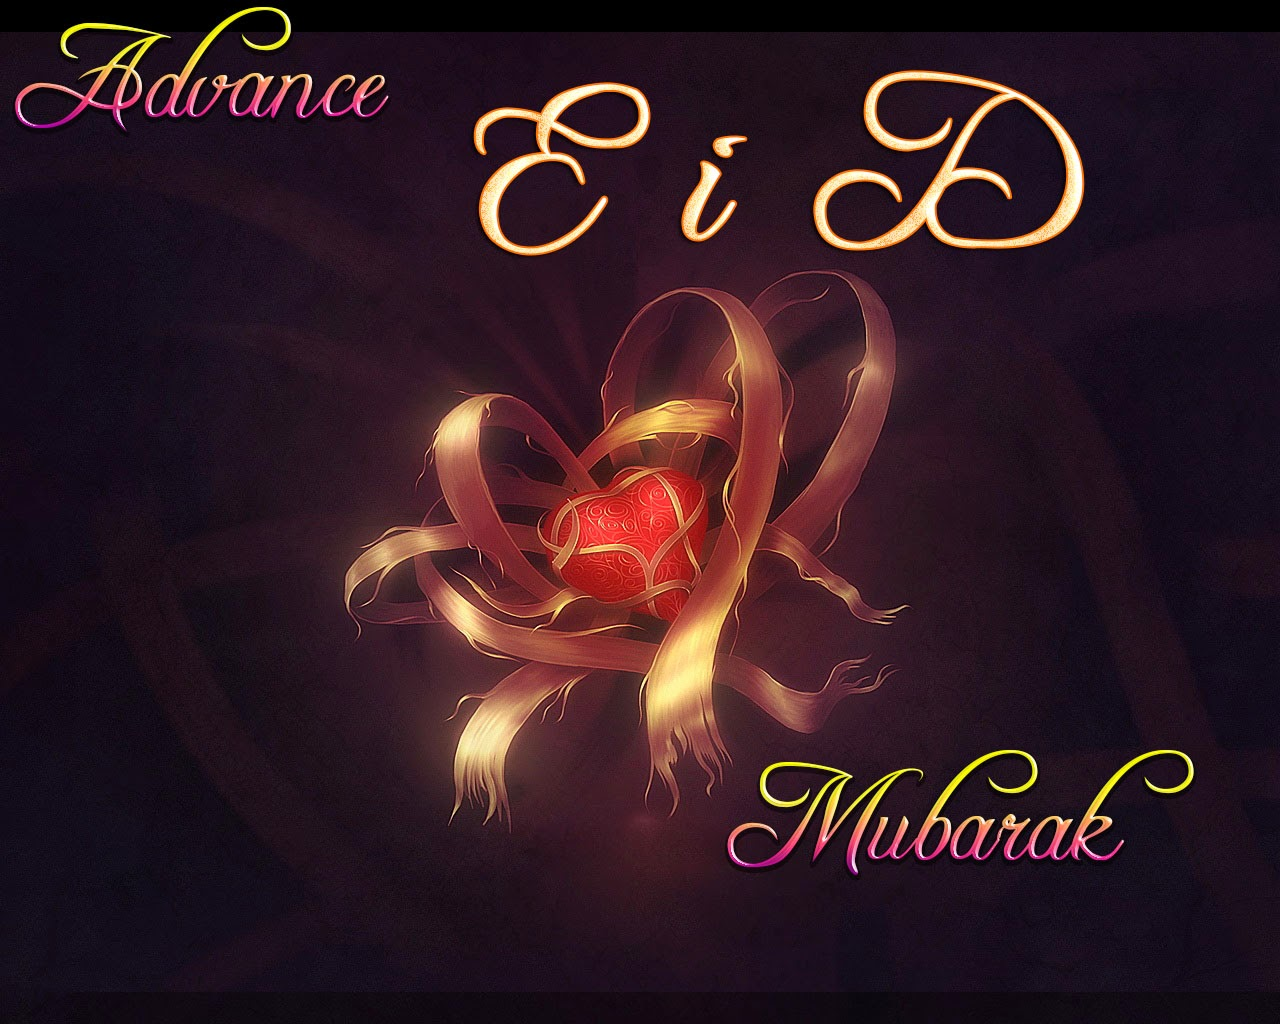 ... Greetings Cards Advance Eid Mubarak Free eCards Wishes Wallpapers